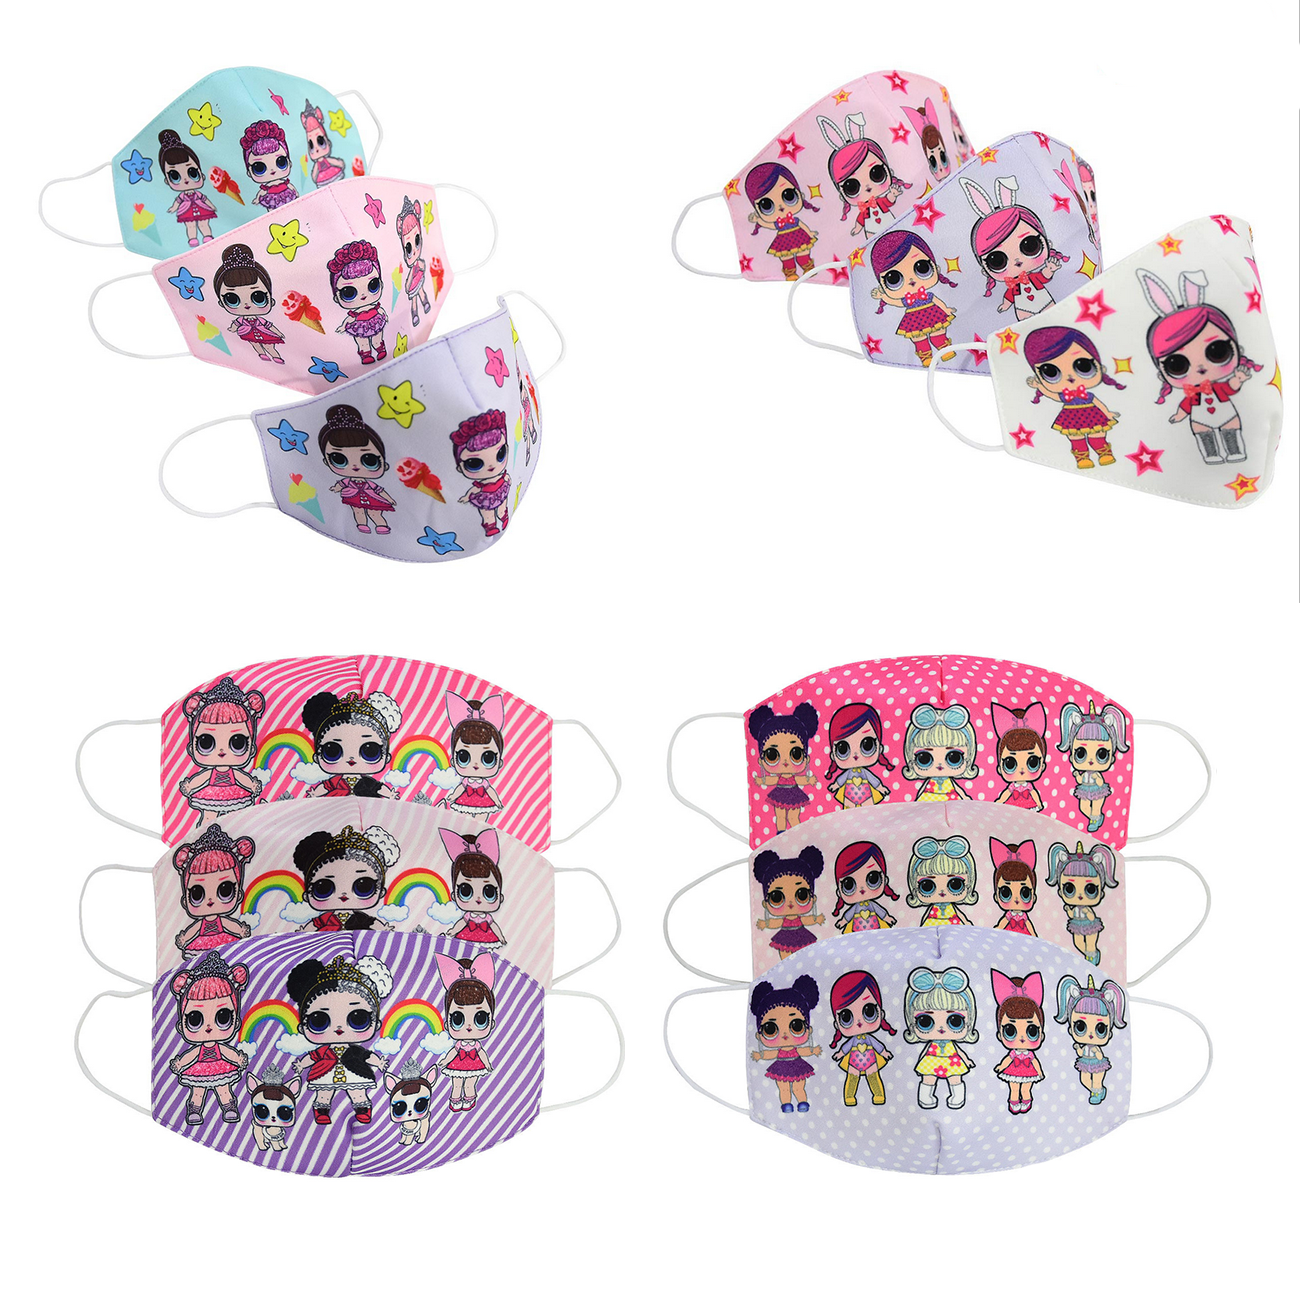 2020 New LOL Surprise Mouth Mask Toys Cartoon Warm Breathable Half Face Dustproof Mask Mouth Cover For Children Kids Girls Boys